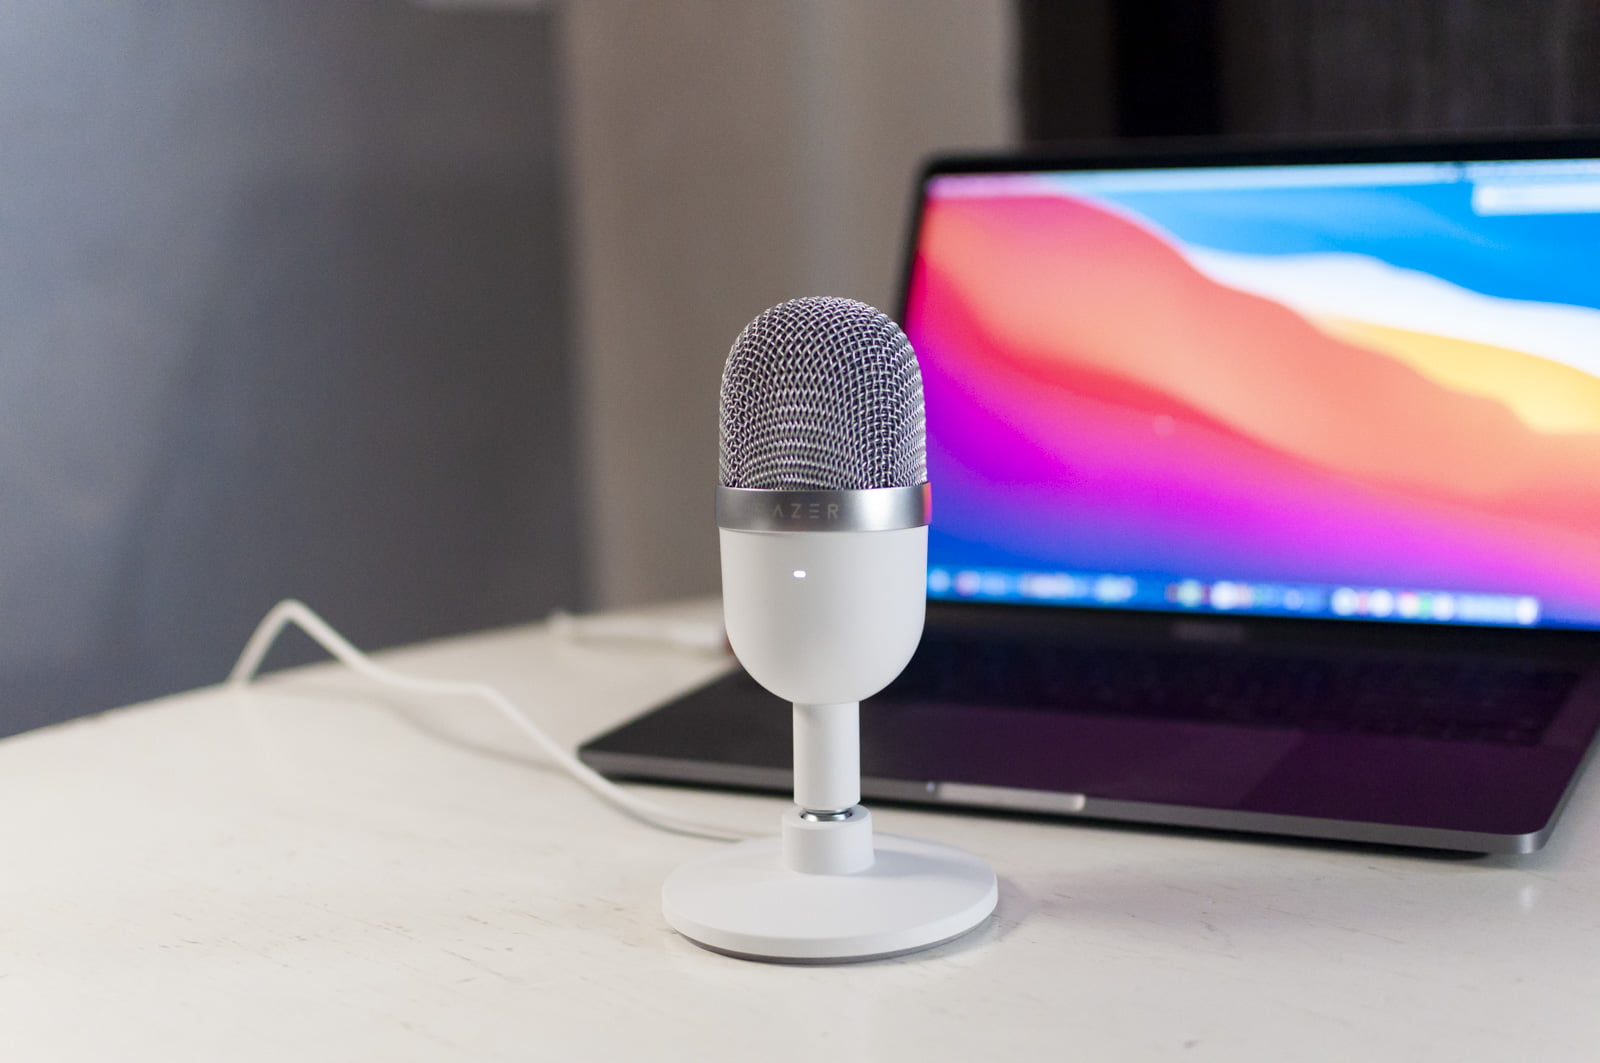 Razer Seiren Mini review, some compromises but a lot of quality at a really interesting price